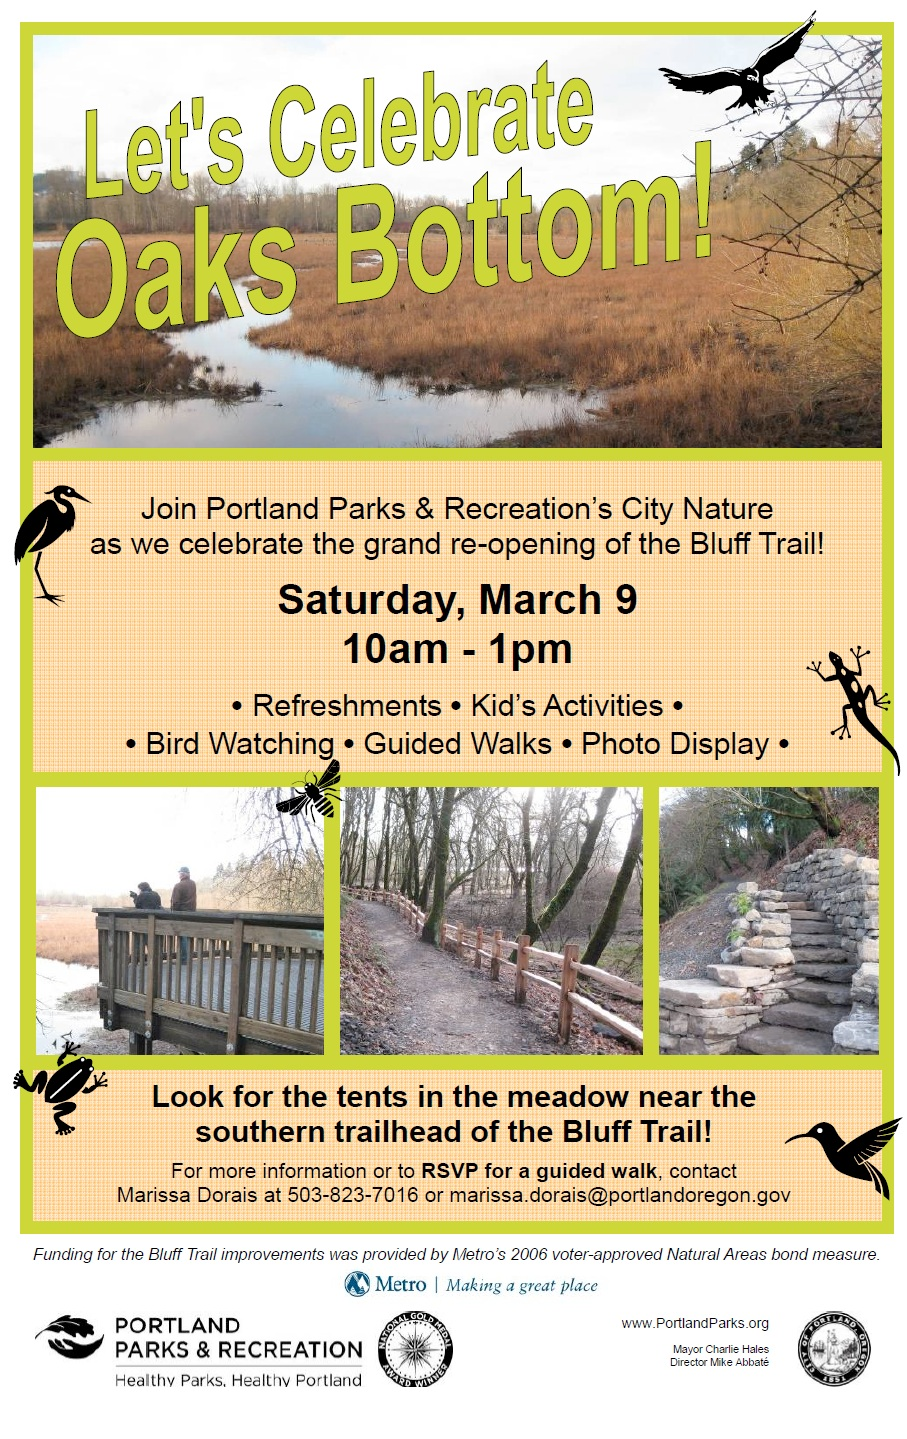 Flyer for Oaks Bottom Celebration on March 9